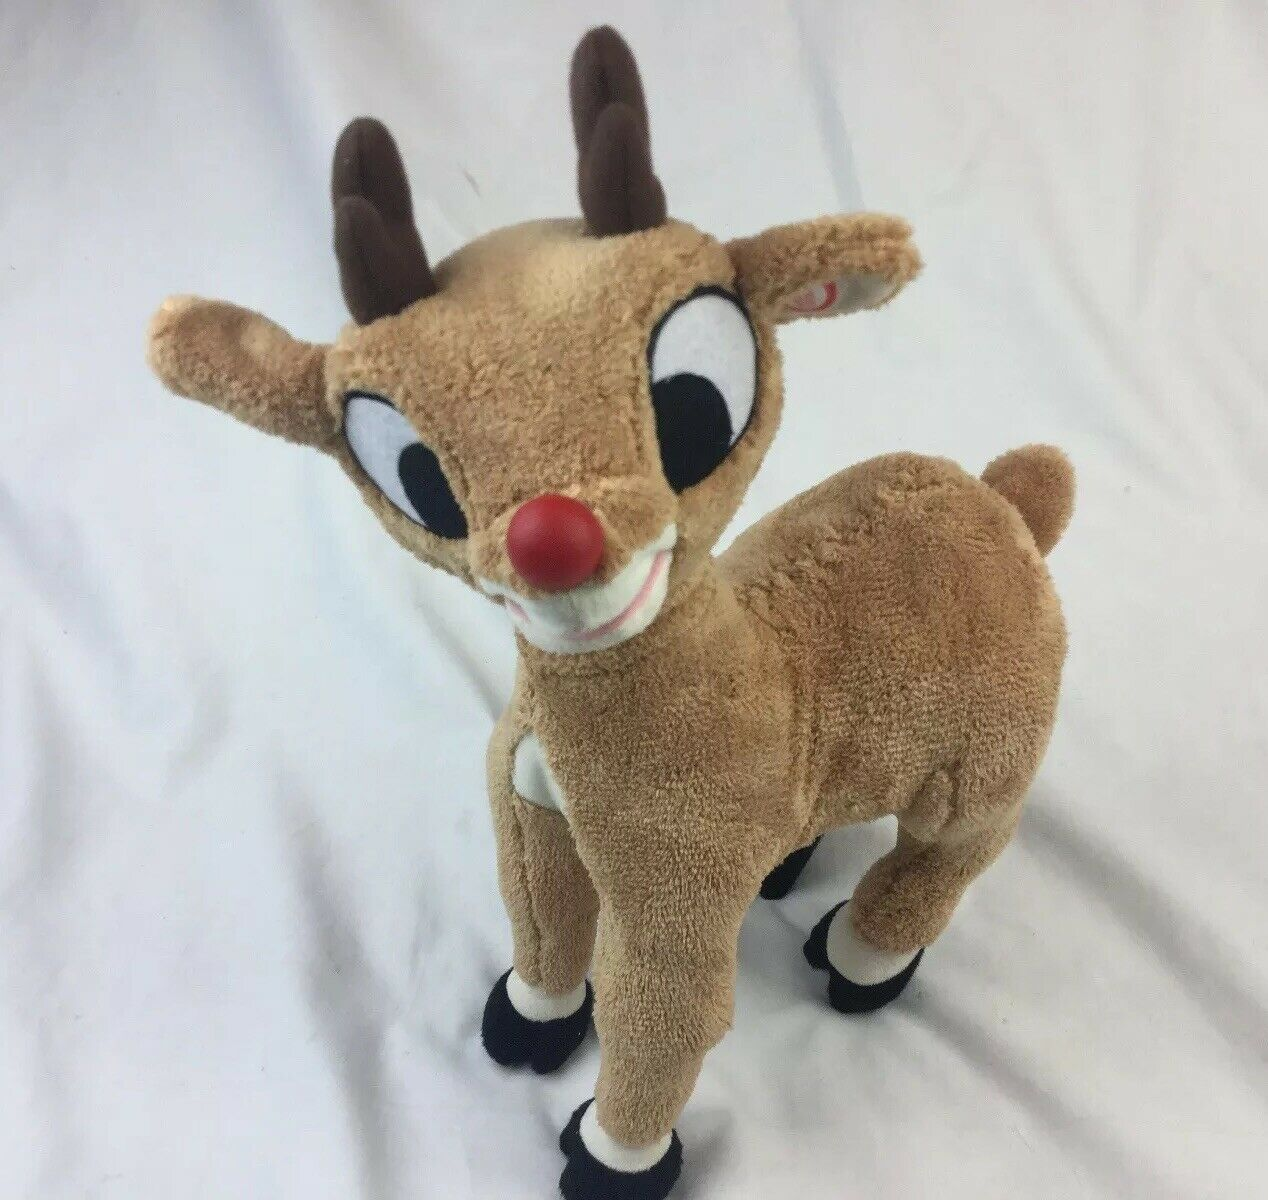 Gemmy Rudolph The rot Nosed Reindeer Talking Singing Animated Neck Moves FLAWS